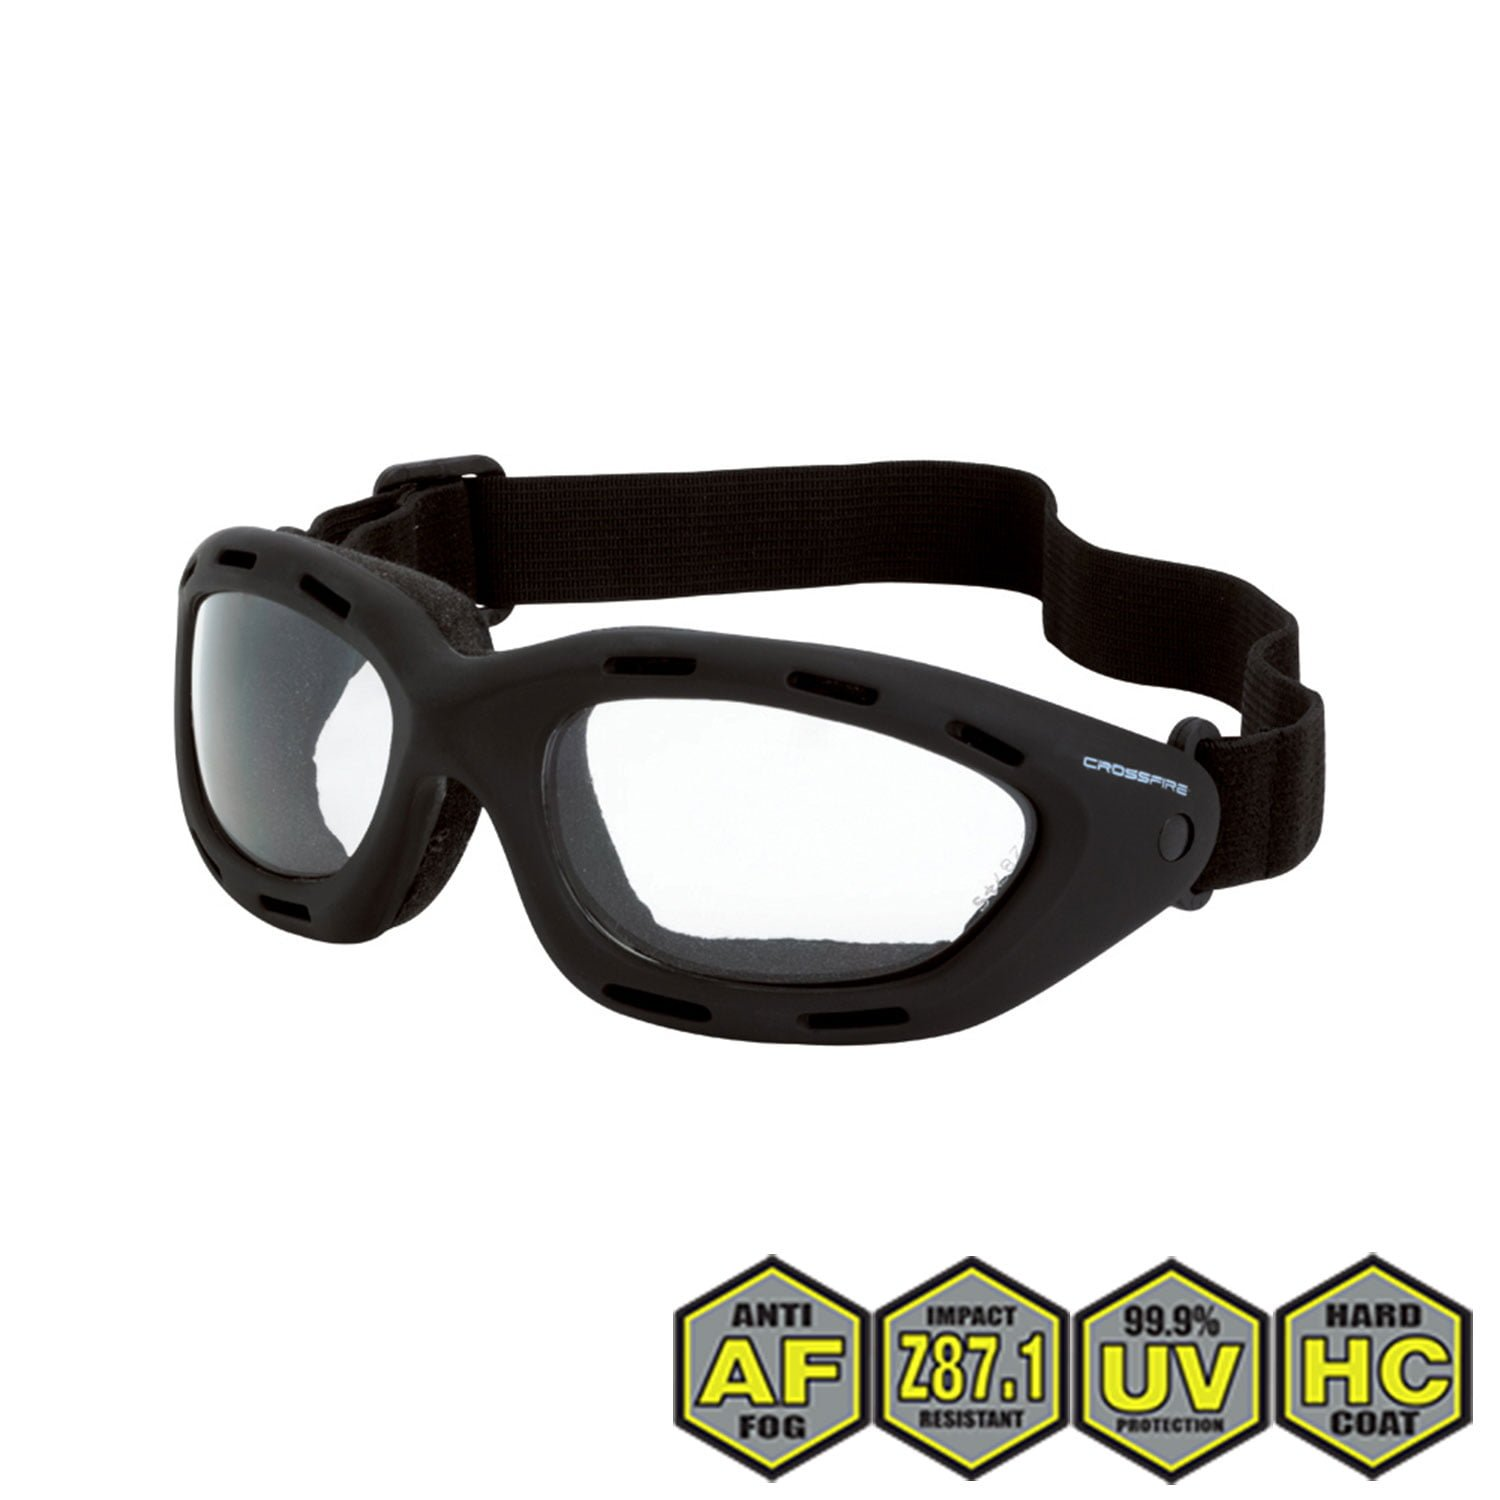 f9ef247387fe7 Radians Crossfire Element Foamed Lined Safety Goggles